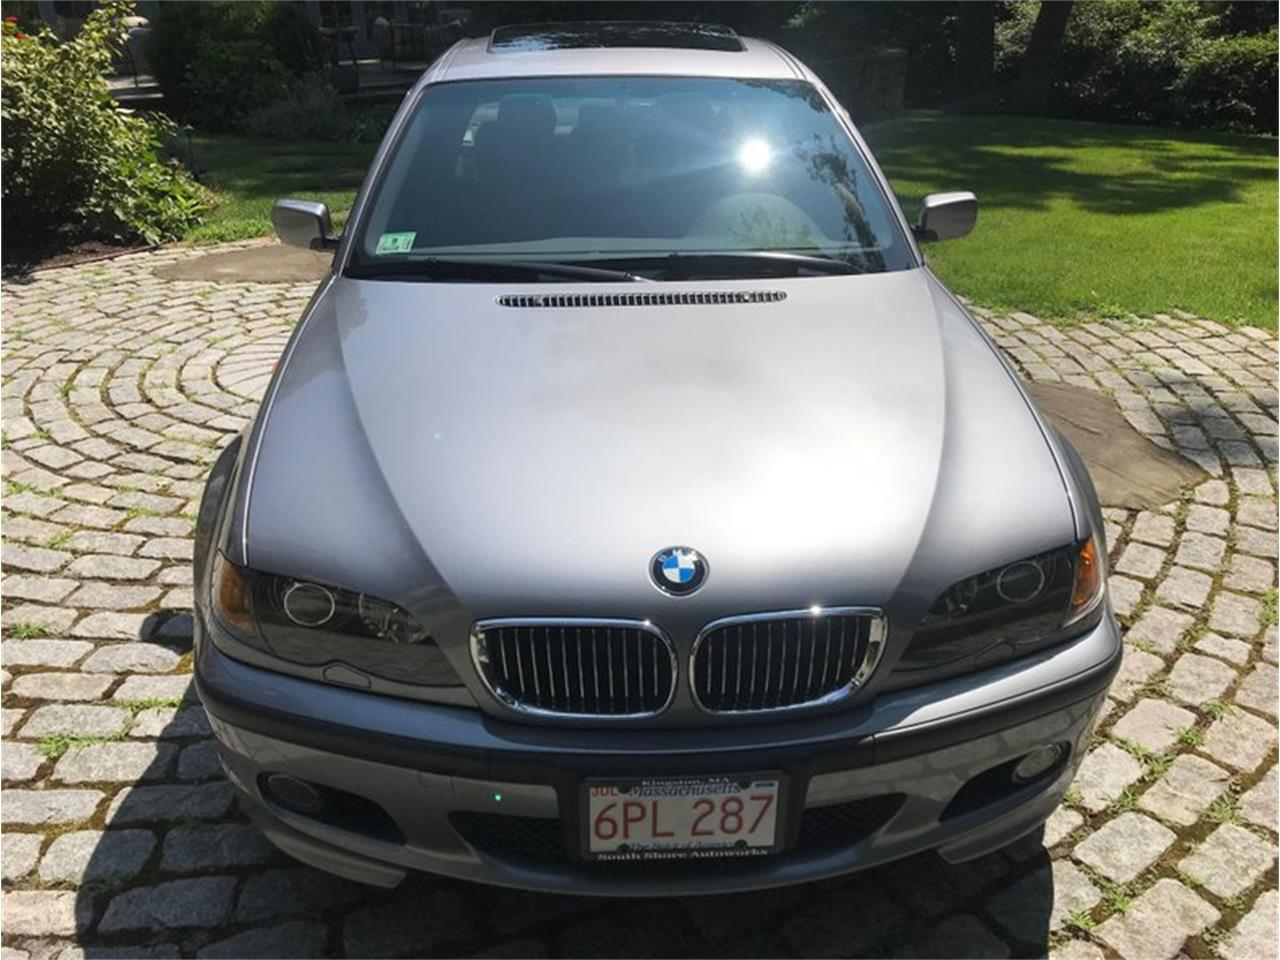 2003 BMW 3 Series for sale in Holliston, MA – photo 9